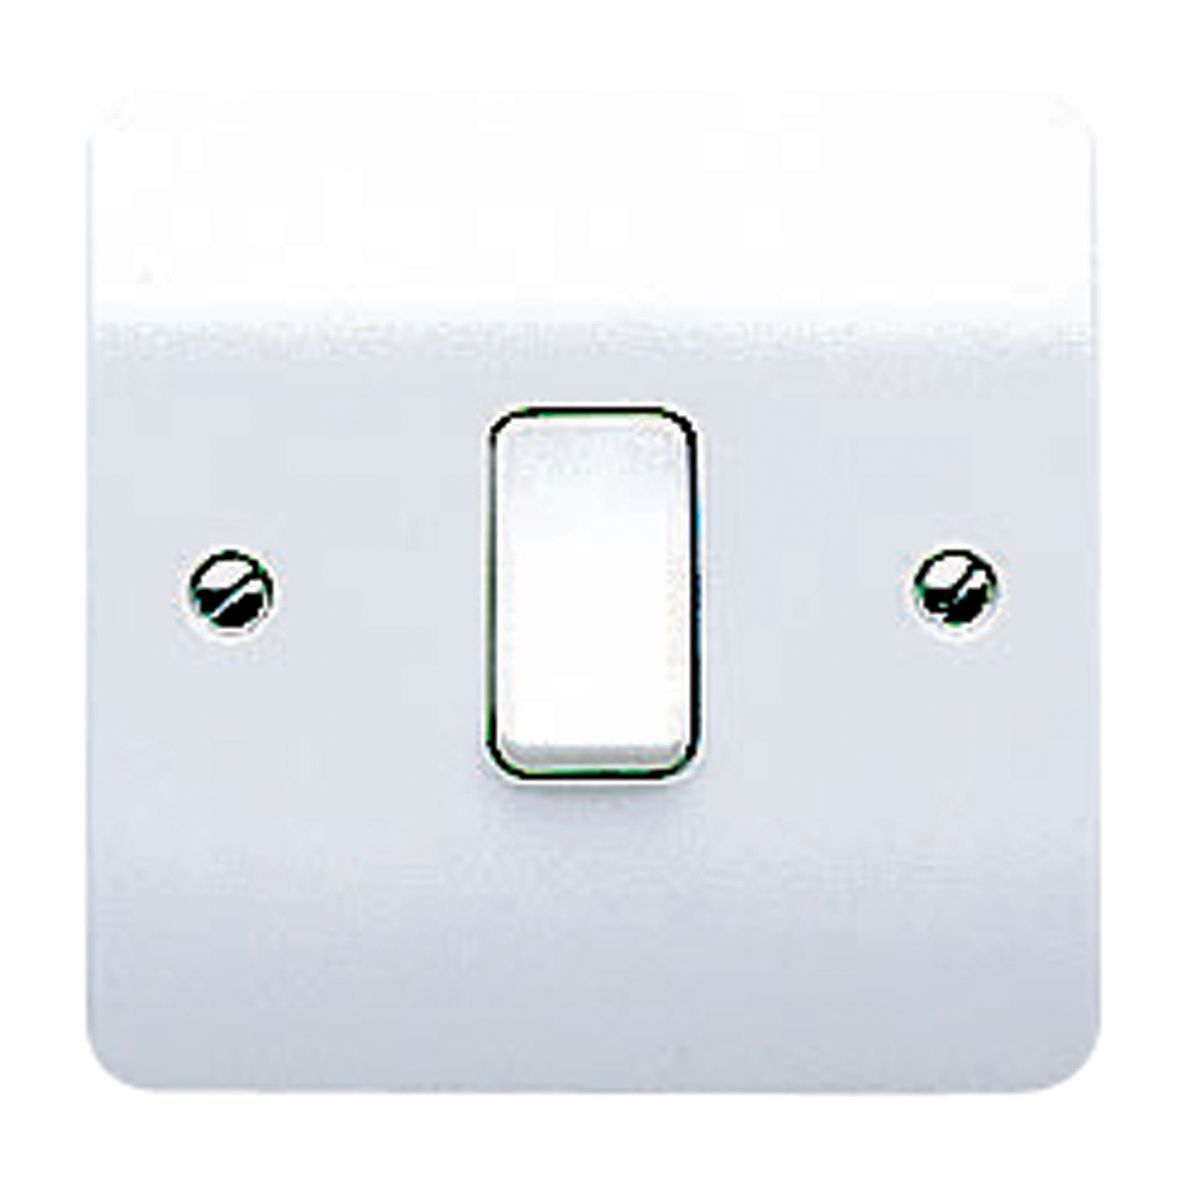 Mk 10a 2 way single white gloss intermediate switch B q bathroom design service